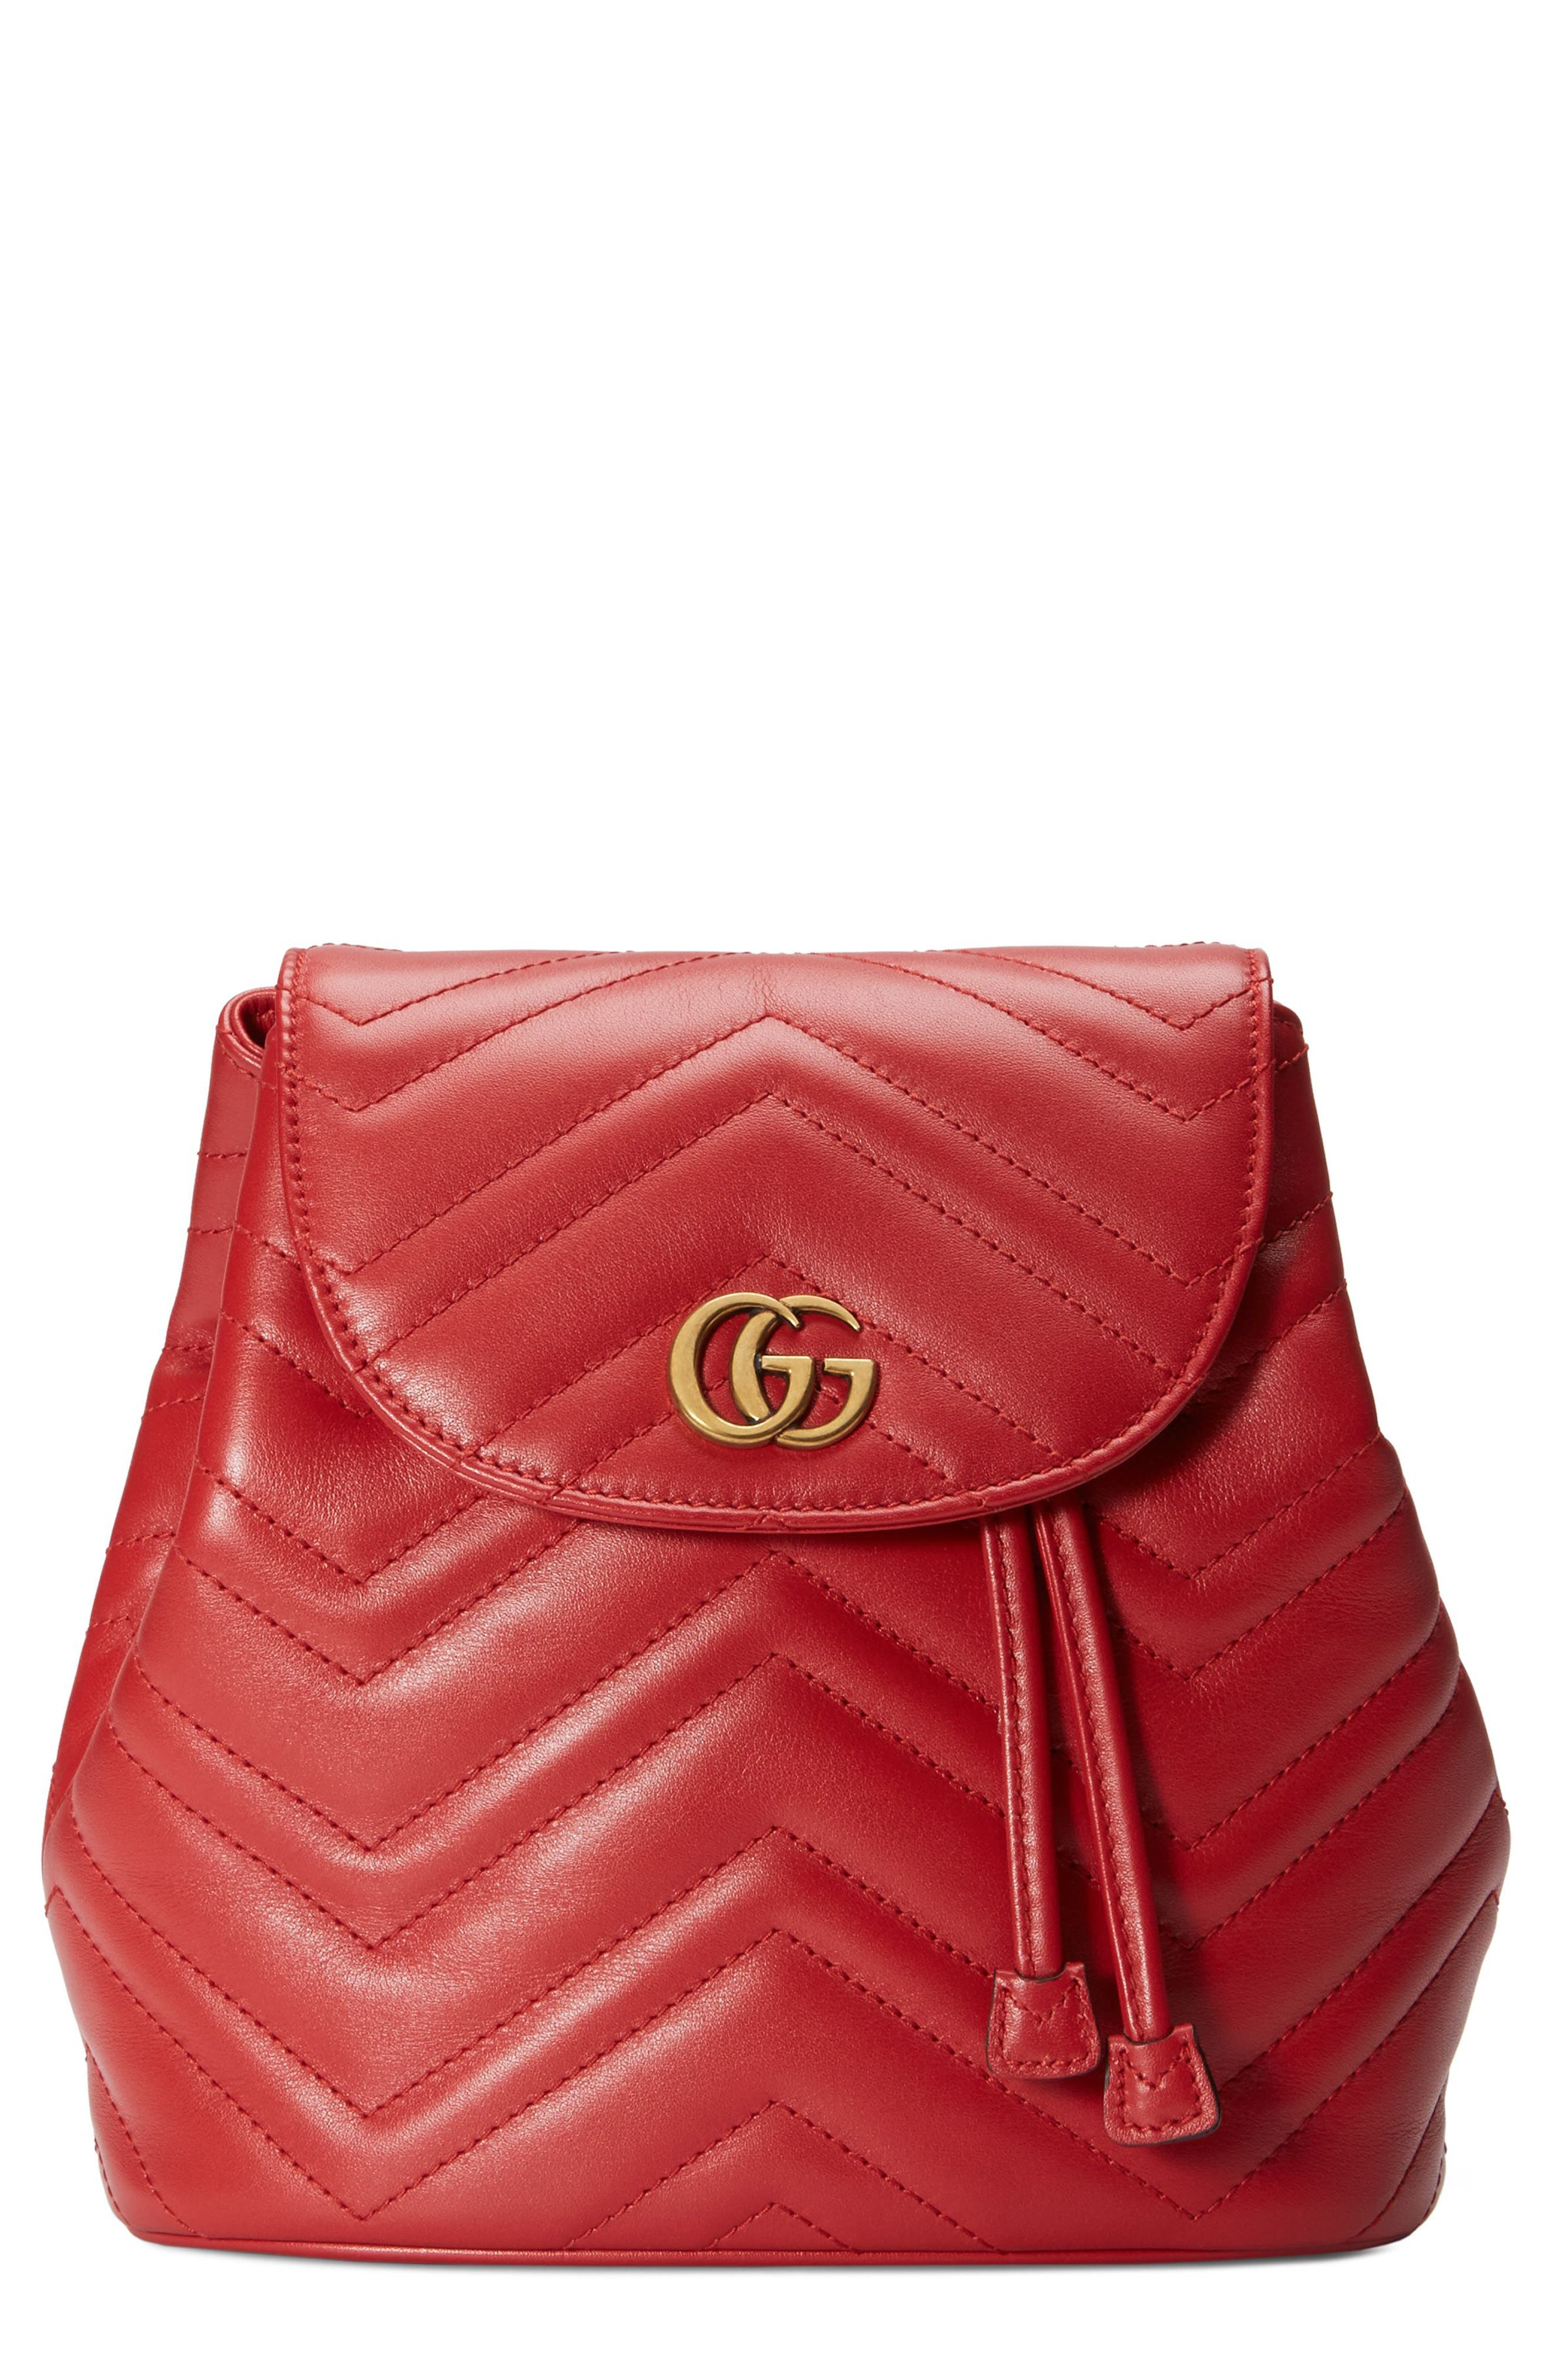 ec6d39d27baa Gucci Gg Marmont 2.0 Matelasse Leather Mini Backpack - Red